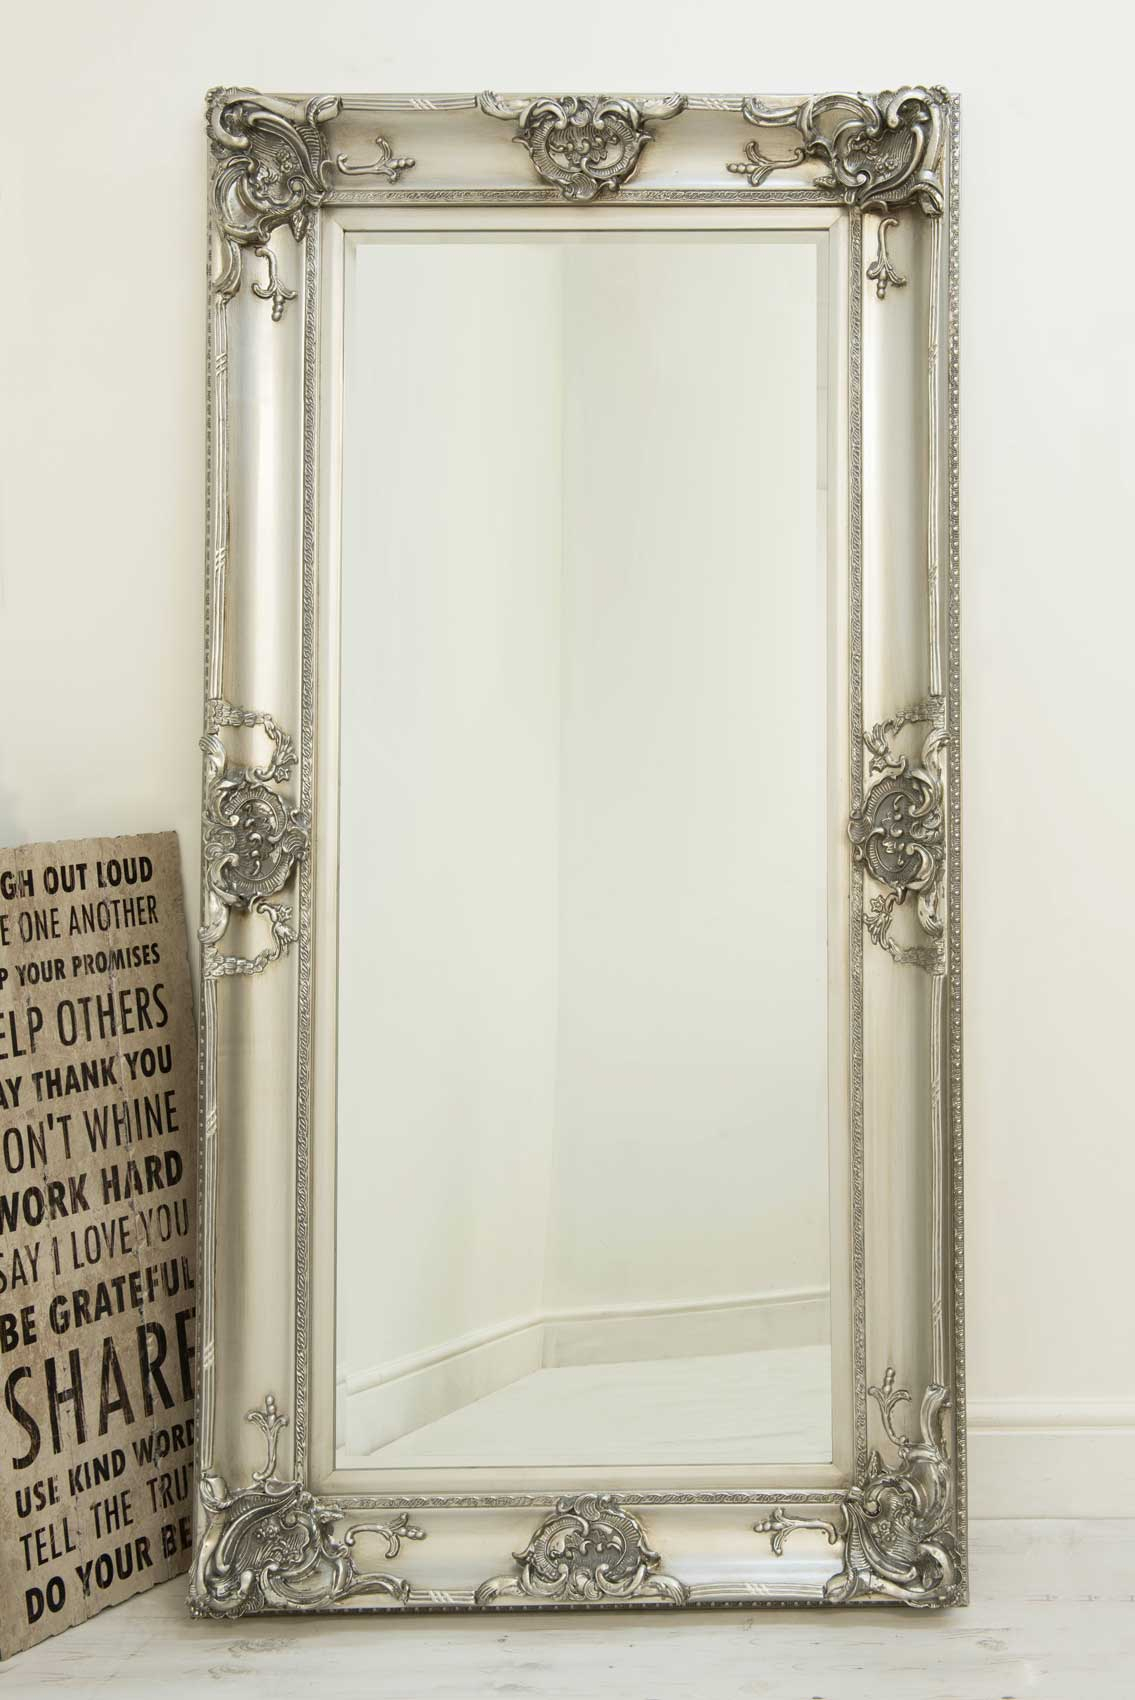 Details About Beautiful Large Silver Decorative Ornate Wall Mirror 6Ft X  3Ft 183 X 91Cm Intended For Rectangle Ornate Geometric Wall Mirrors (Photo 9 of 20)